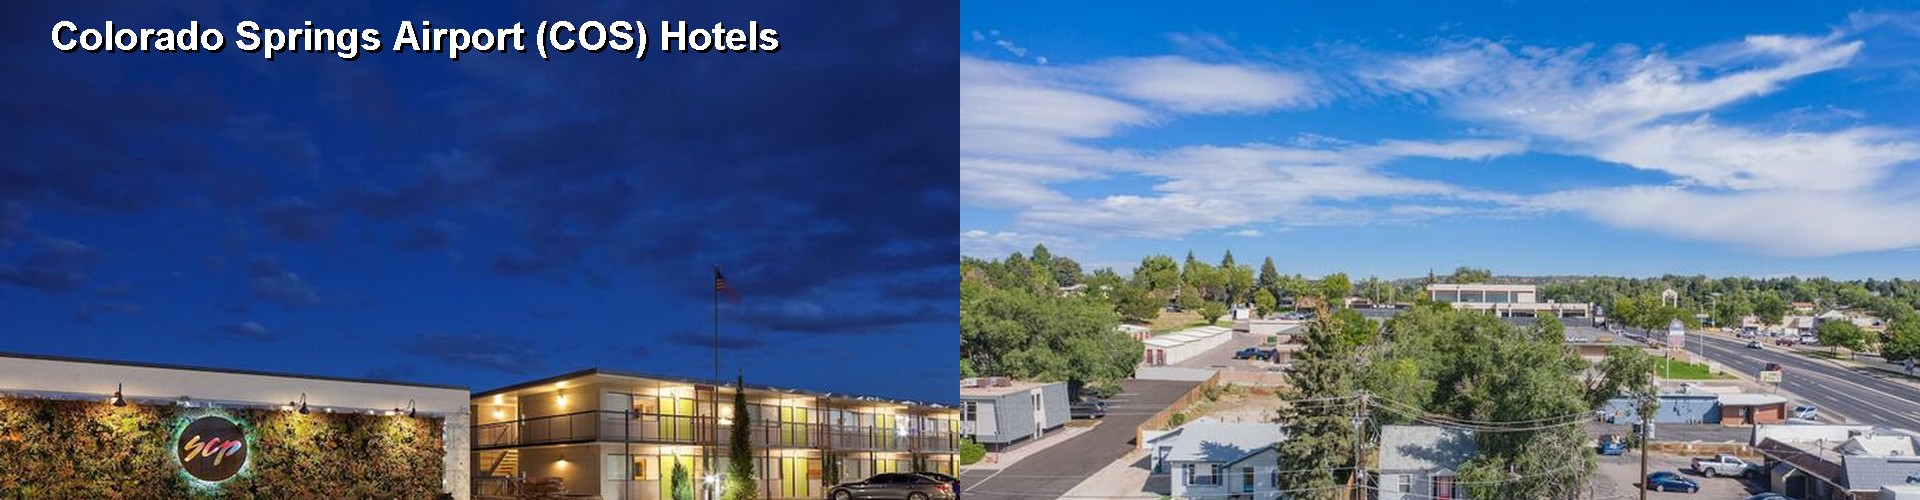 Cheap Hotels In Colorado Springs Near Airport